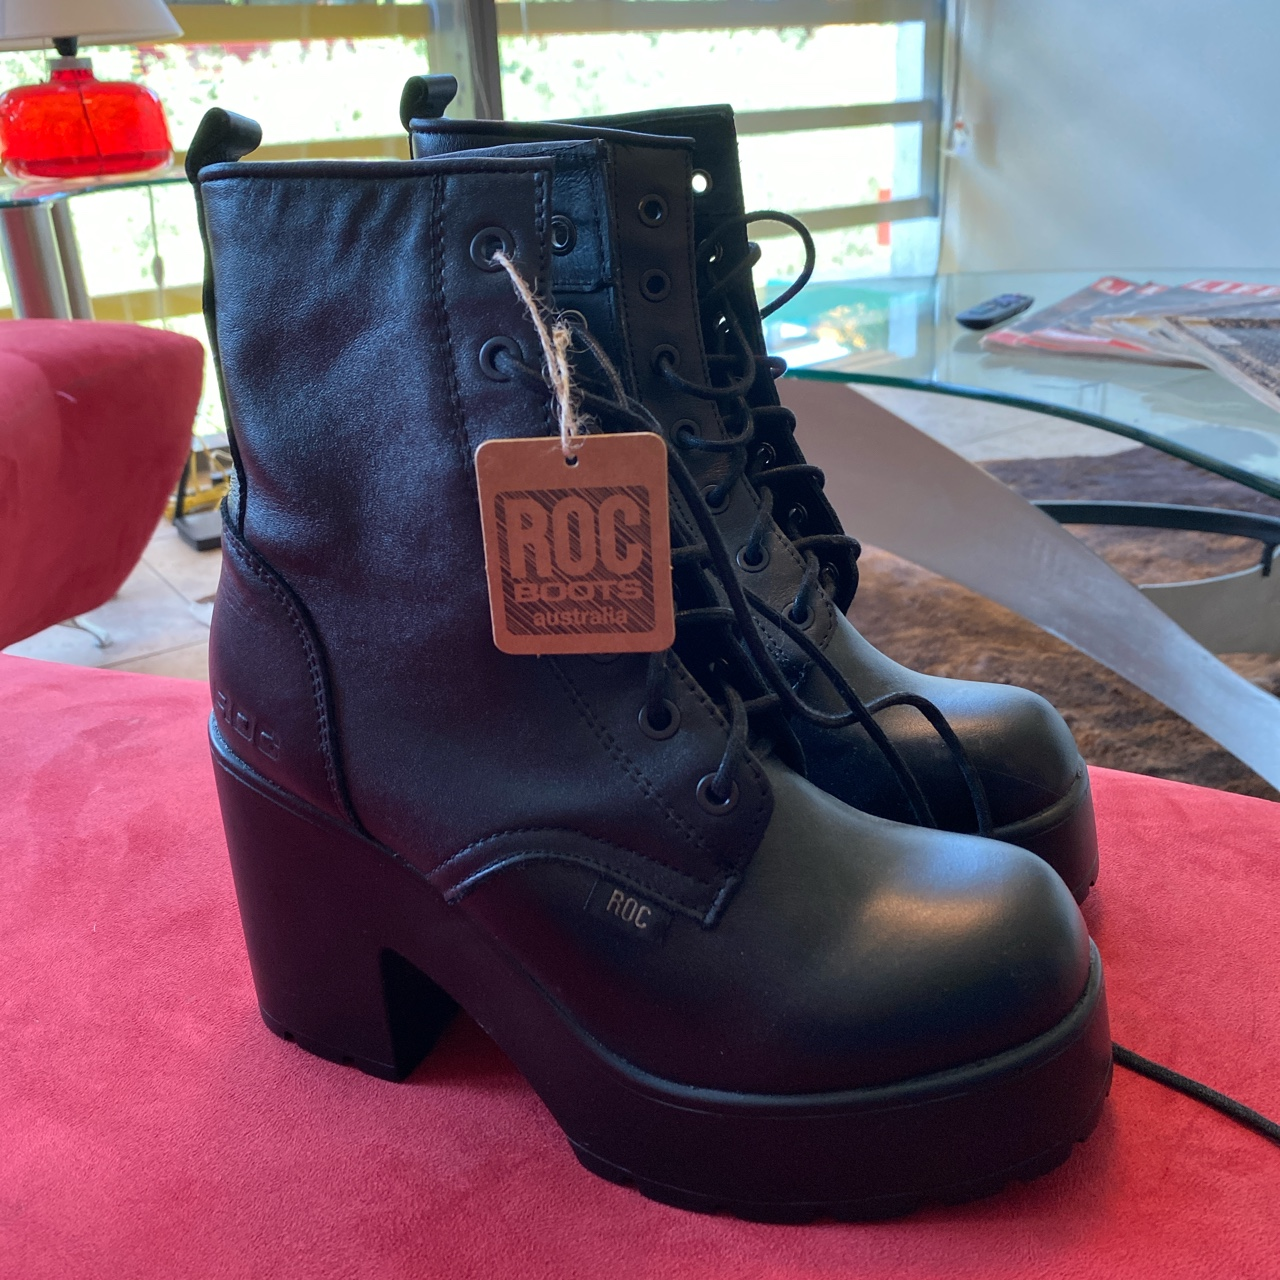 Product Image 1 - Roc boots from Australia never